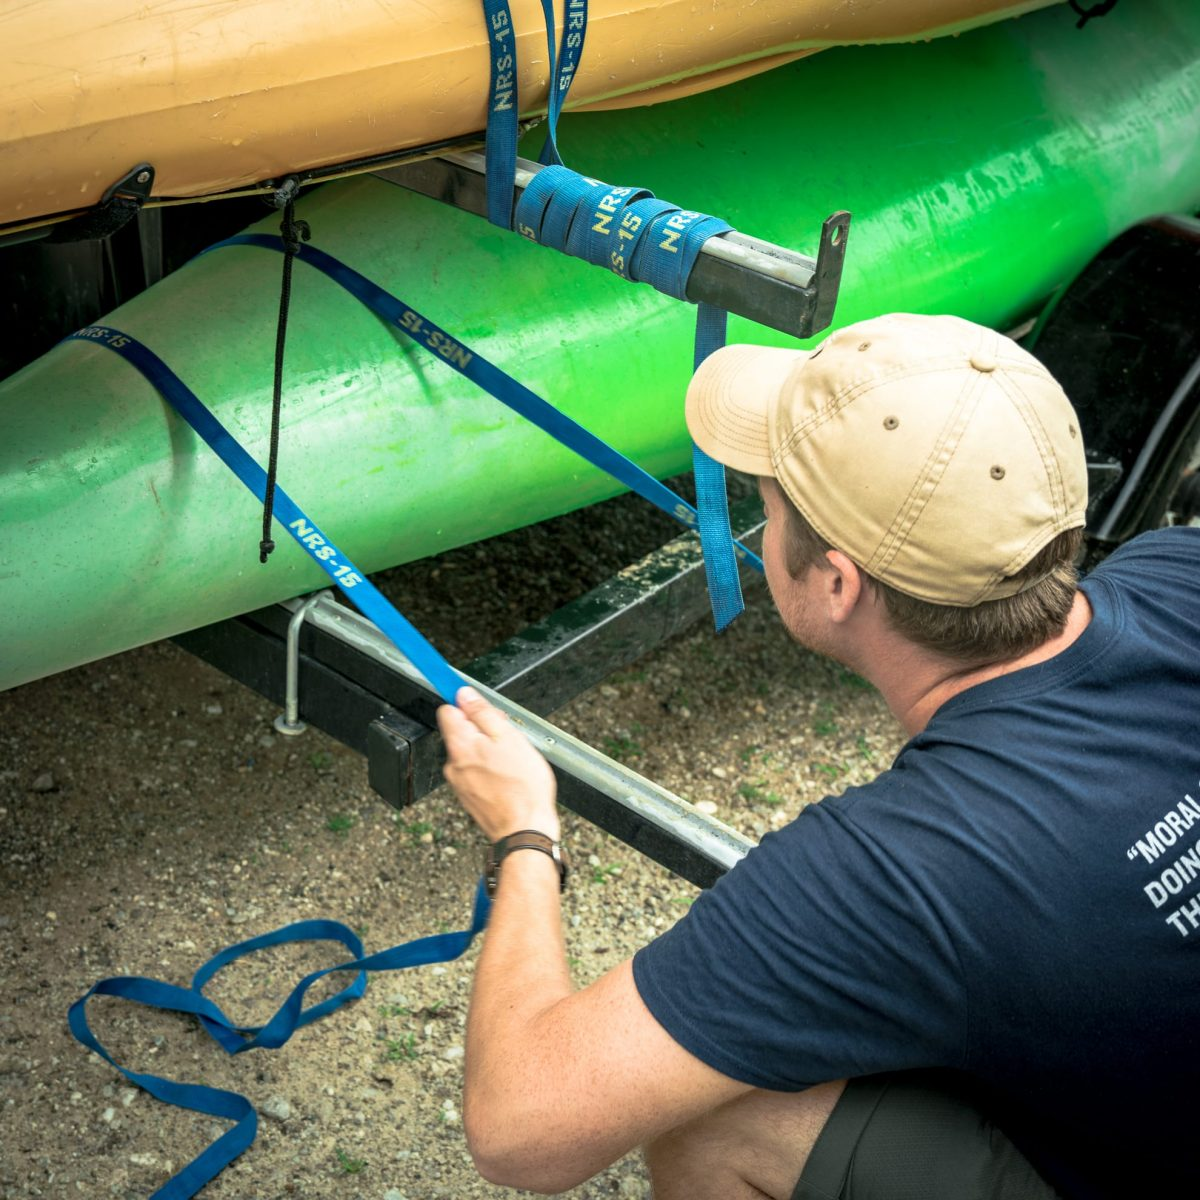 Instructors preparing for an expedition by securing a set of kayaks.